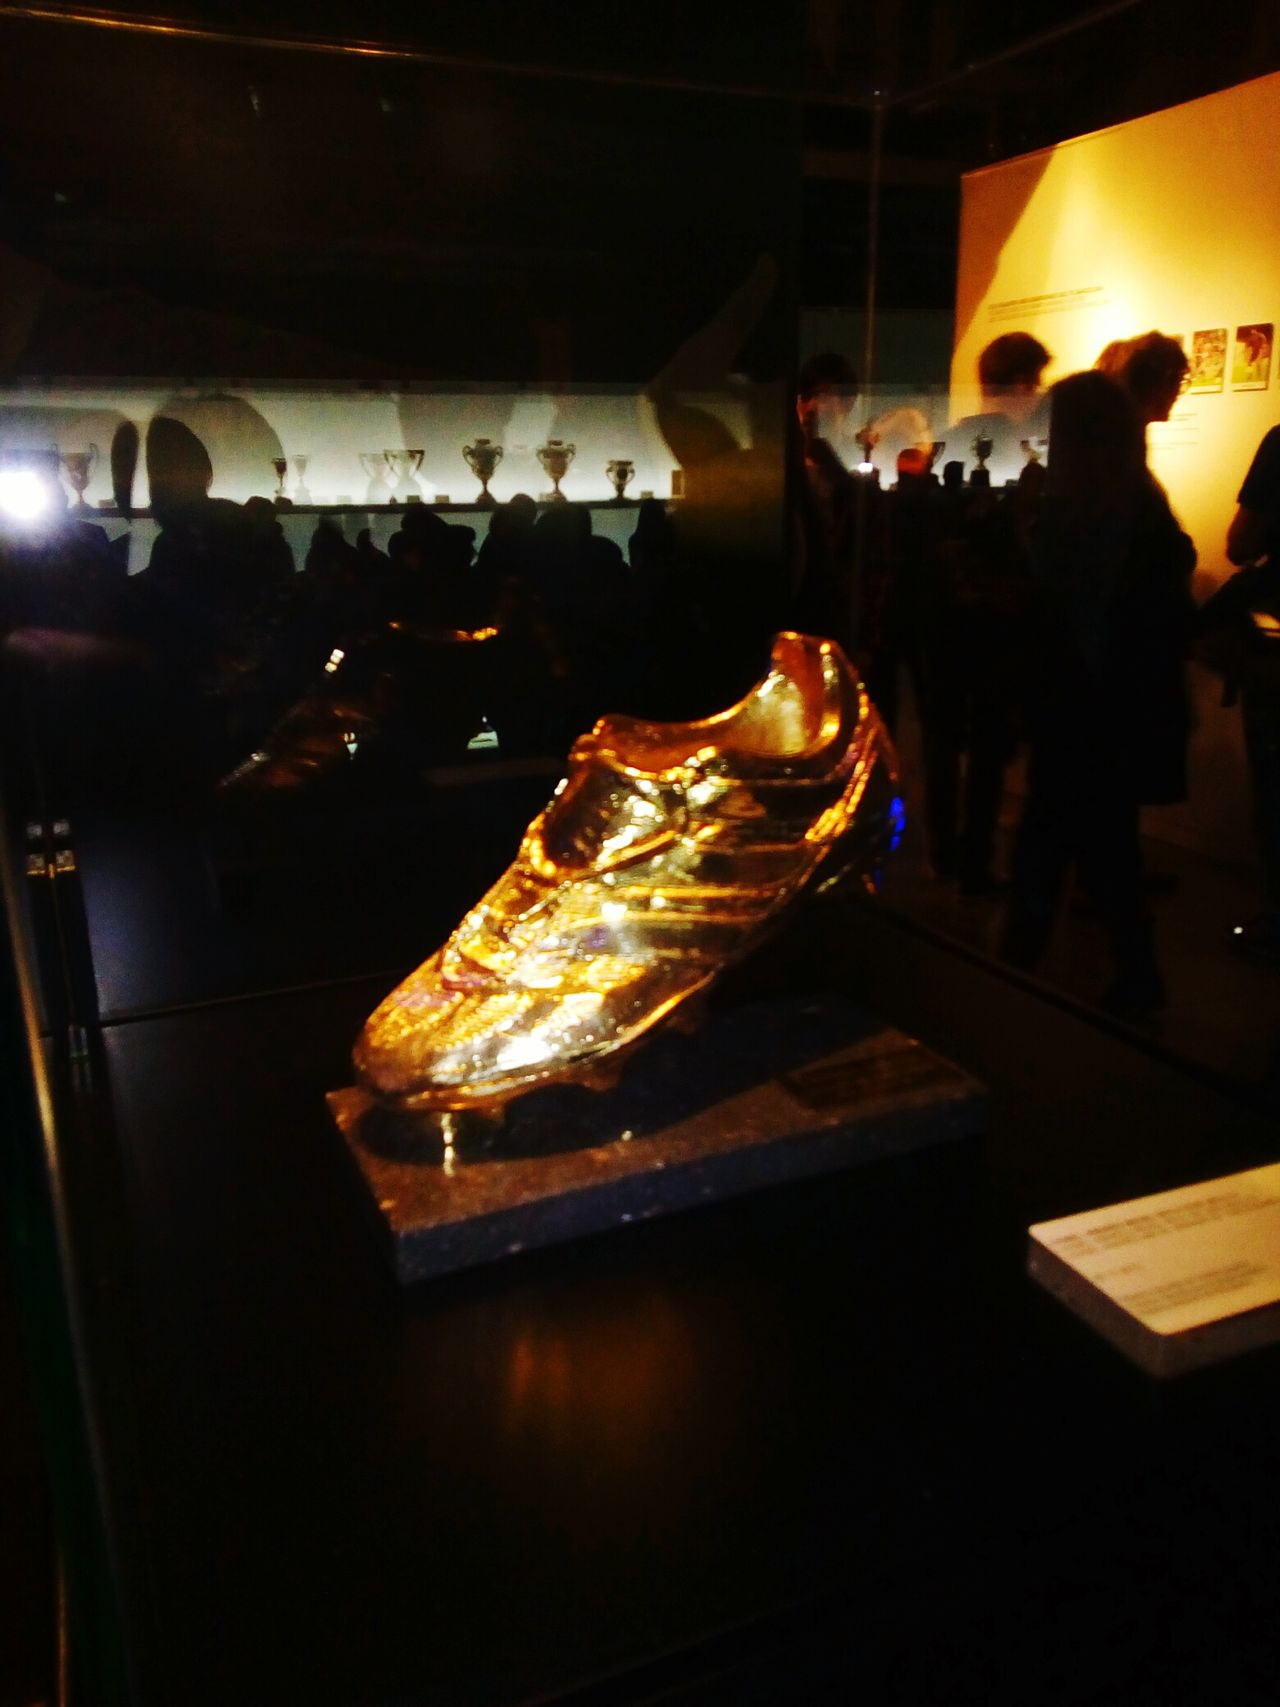 Cameraphone Goodmorning Taking Photos Darkness And Light Museu Camp Nou Golden Boot He Visto La Luz